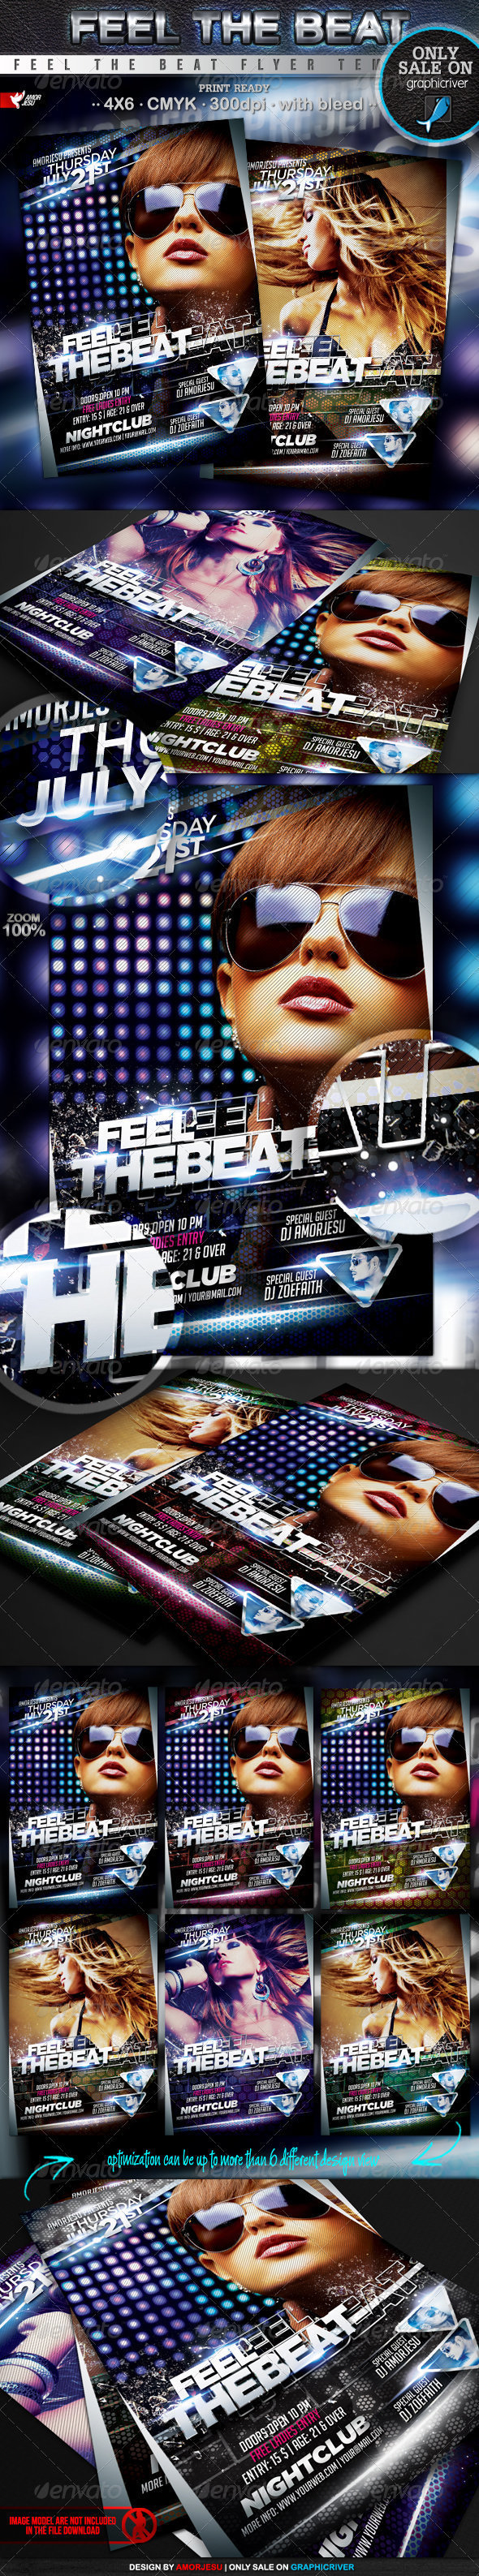 Feel The Beat Flyer Template - Events Flyers